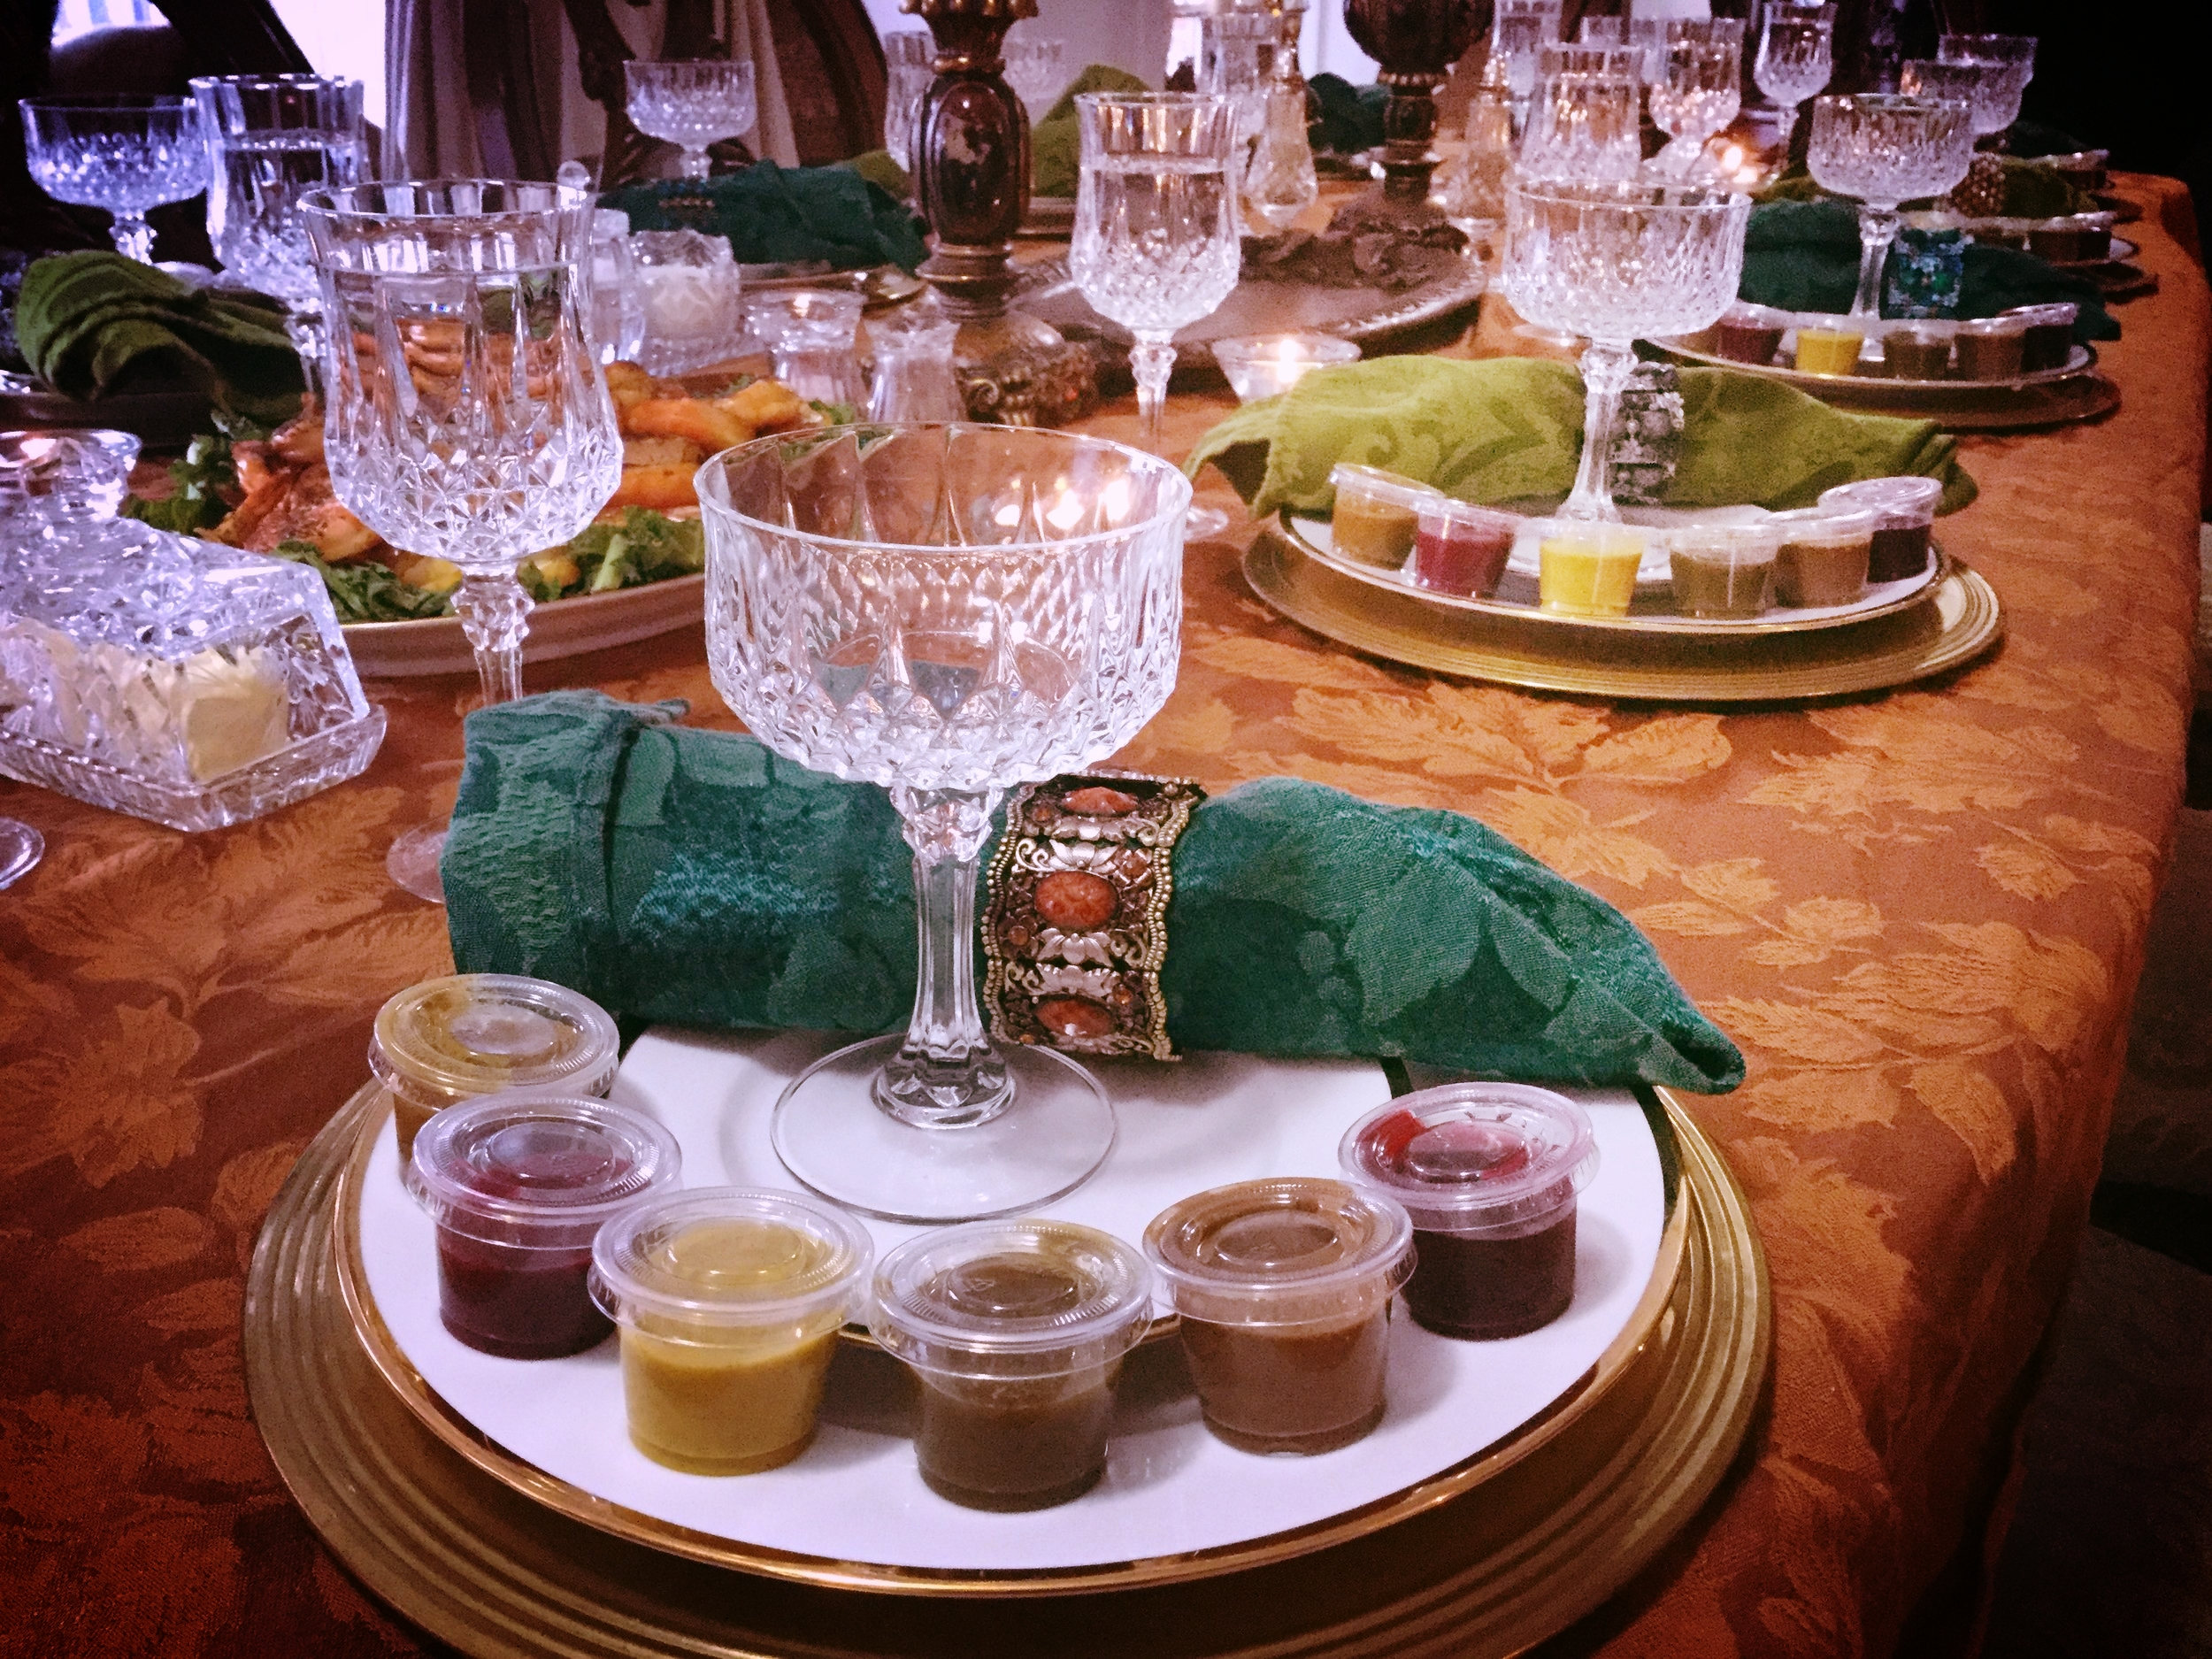 Brunch & Learn Featuring Grannie's Health Tonics   -   Visit Health Food Blog for Grannie's Tonics